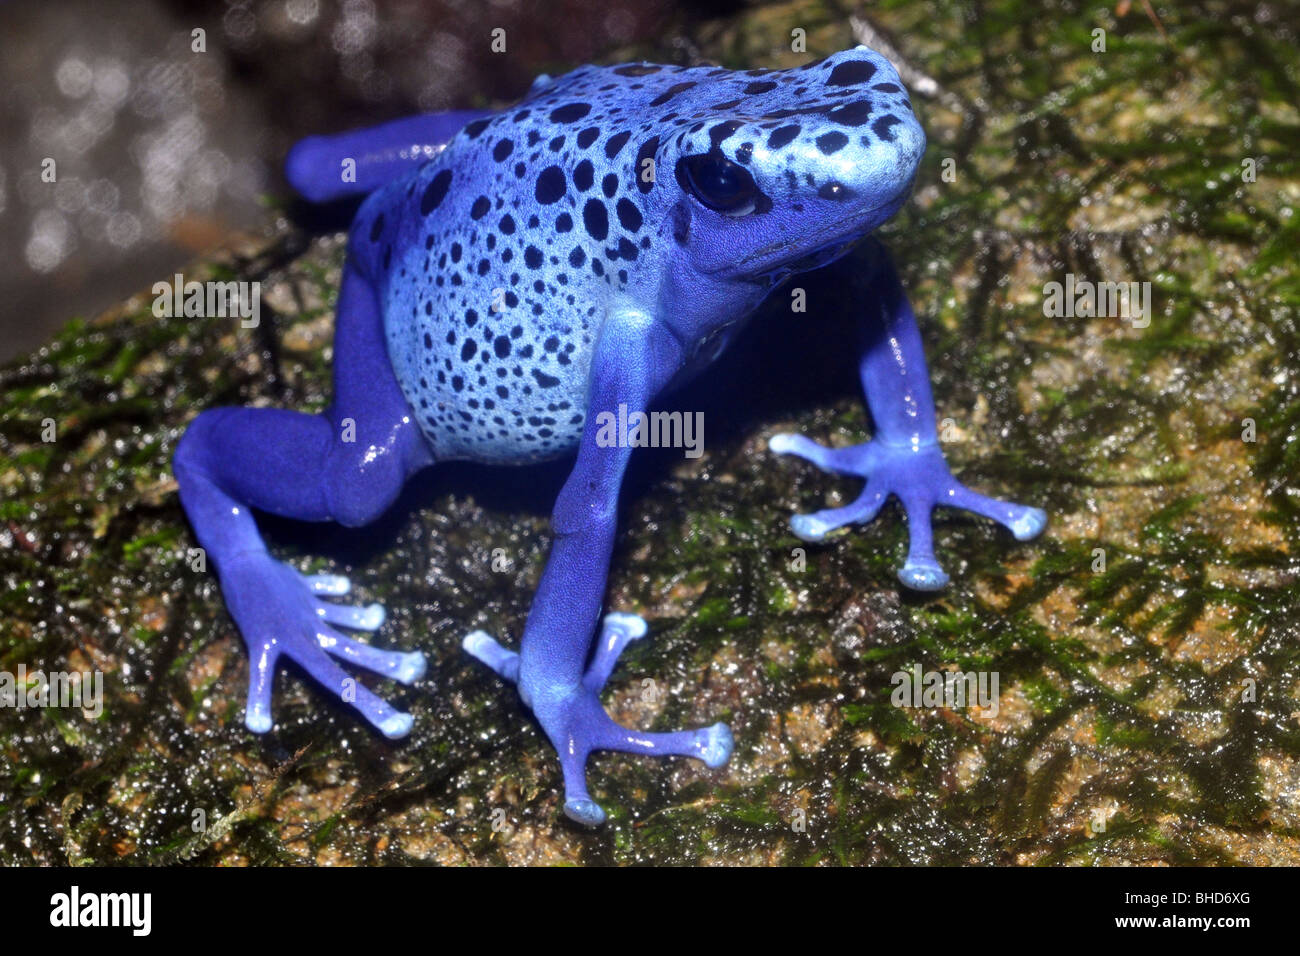 Suriname Poison Arrow Frog ( Dendrobates azureus). Typically a ground frog, found among moss covered trees and rocks. - Stock Image